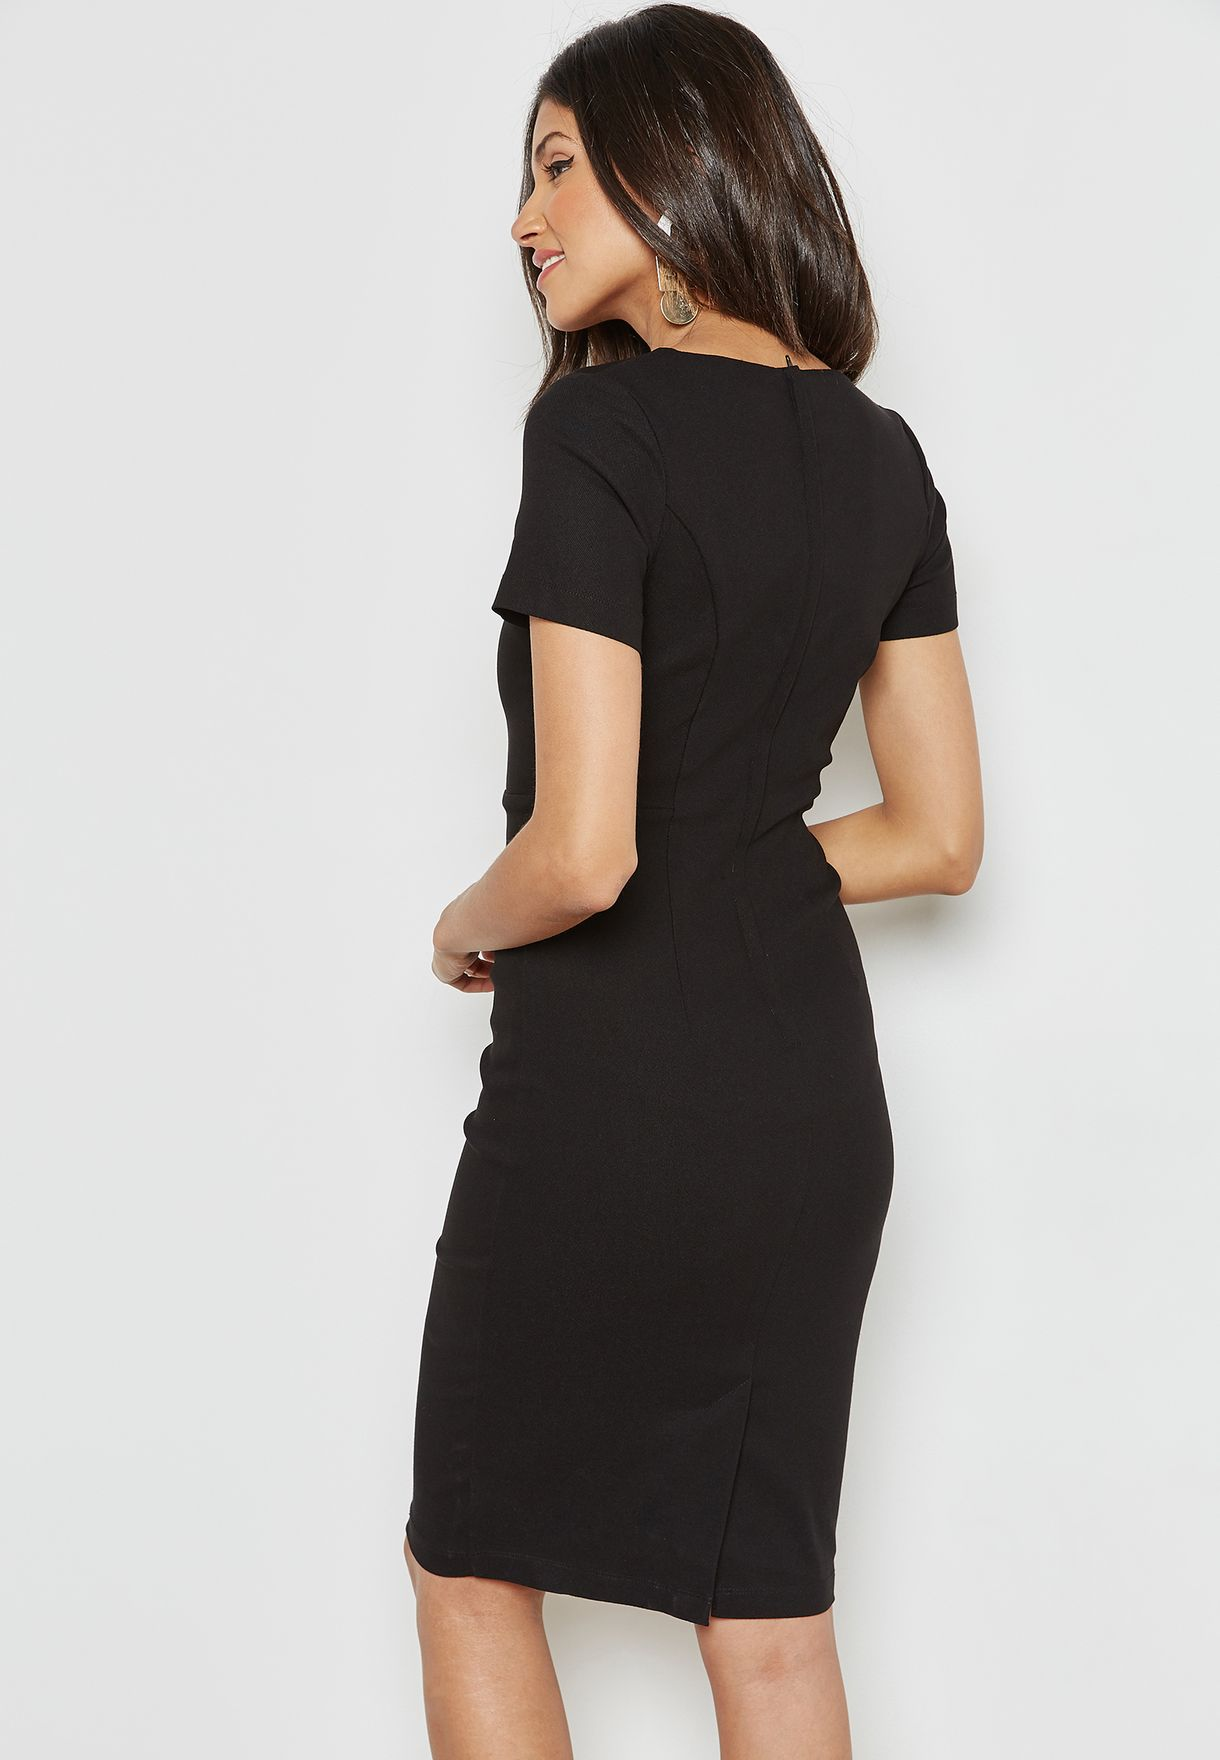 Bar Detail Pencil Dress